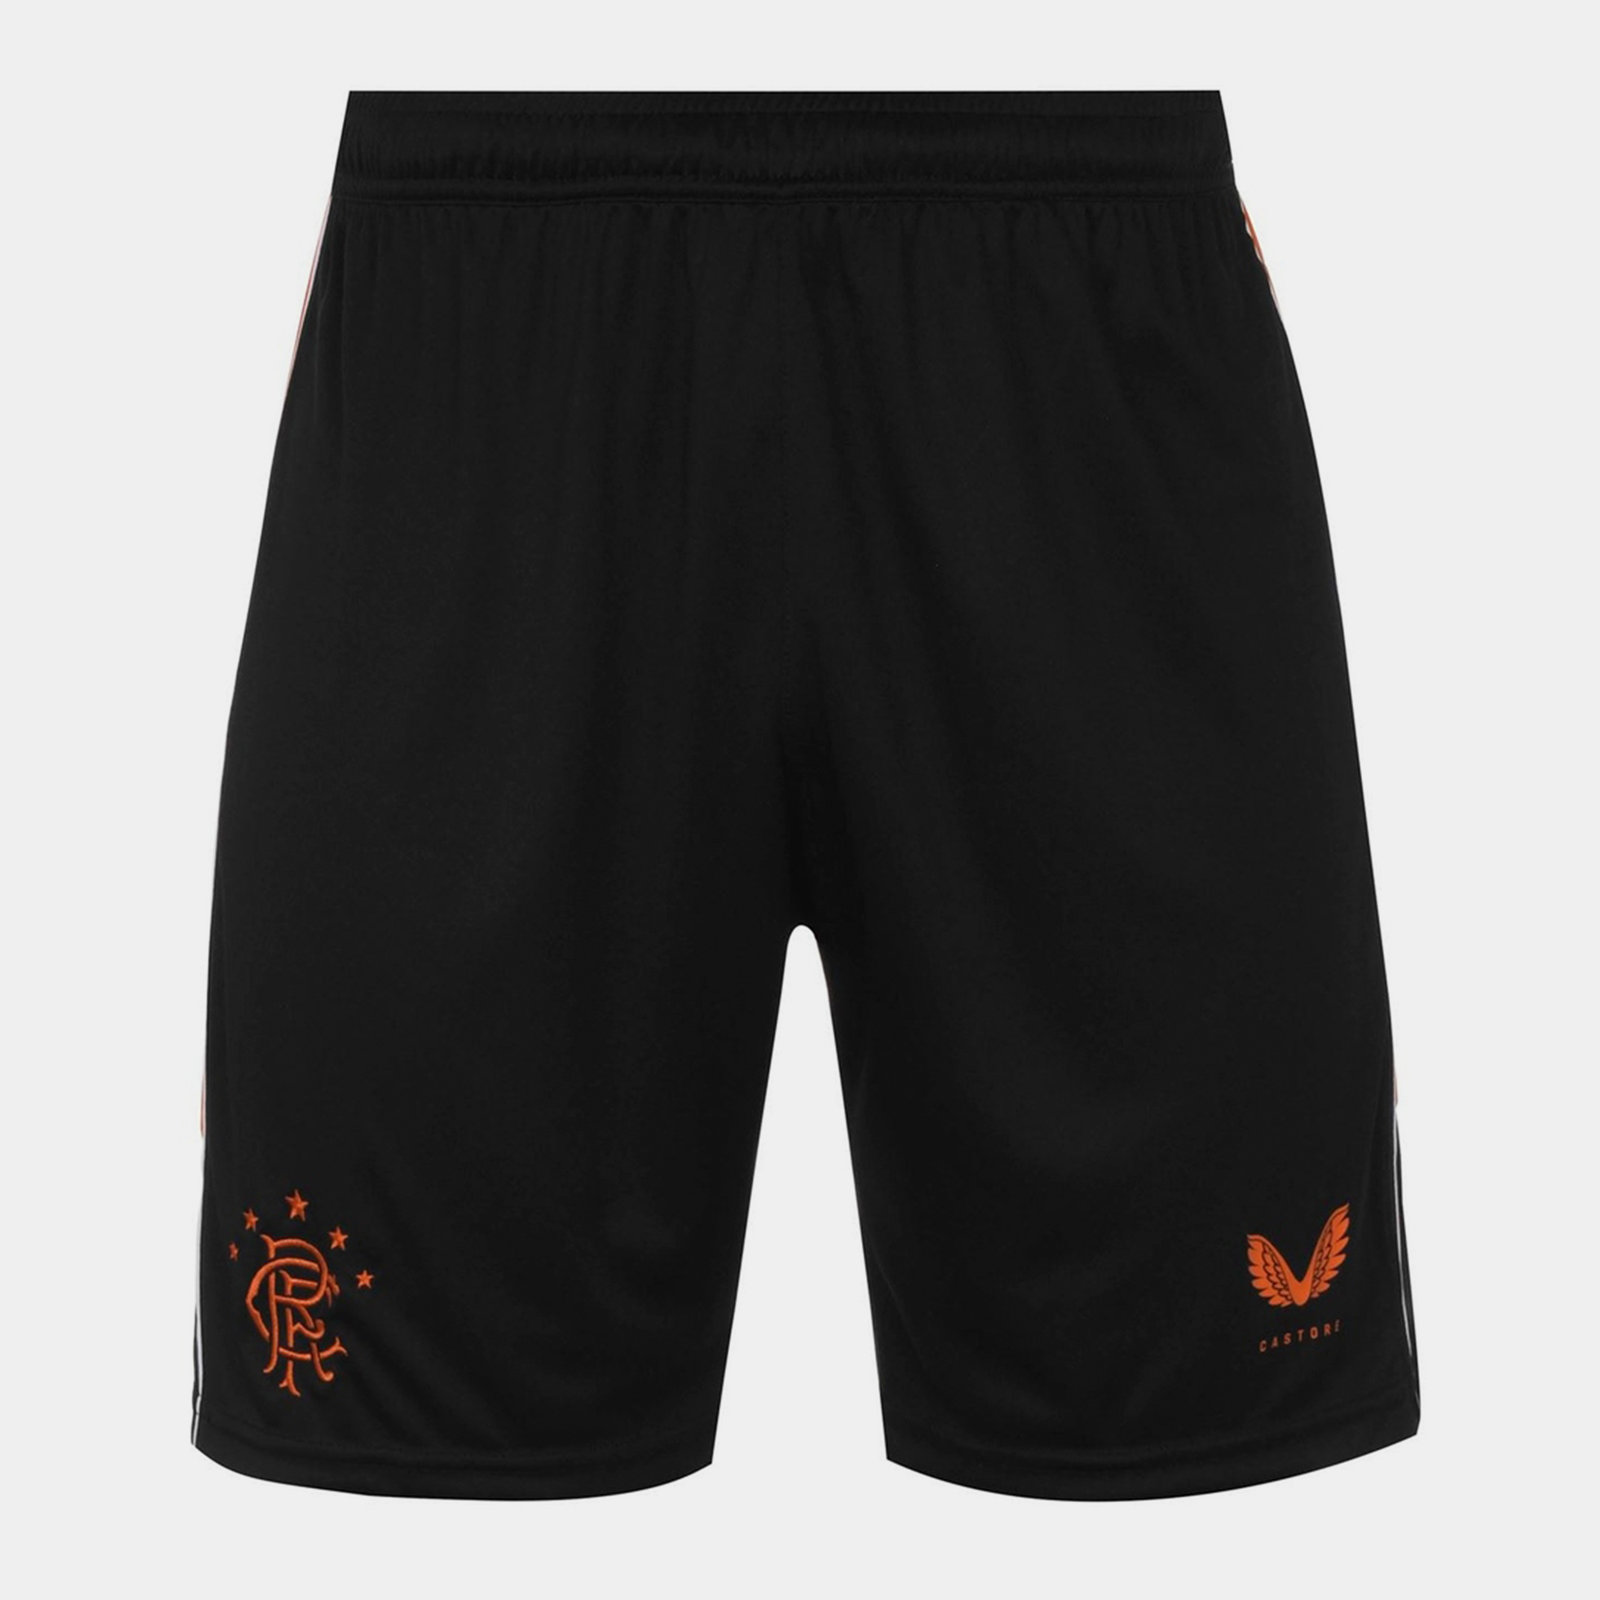 Rangers Third Shorts 20/21 Mens